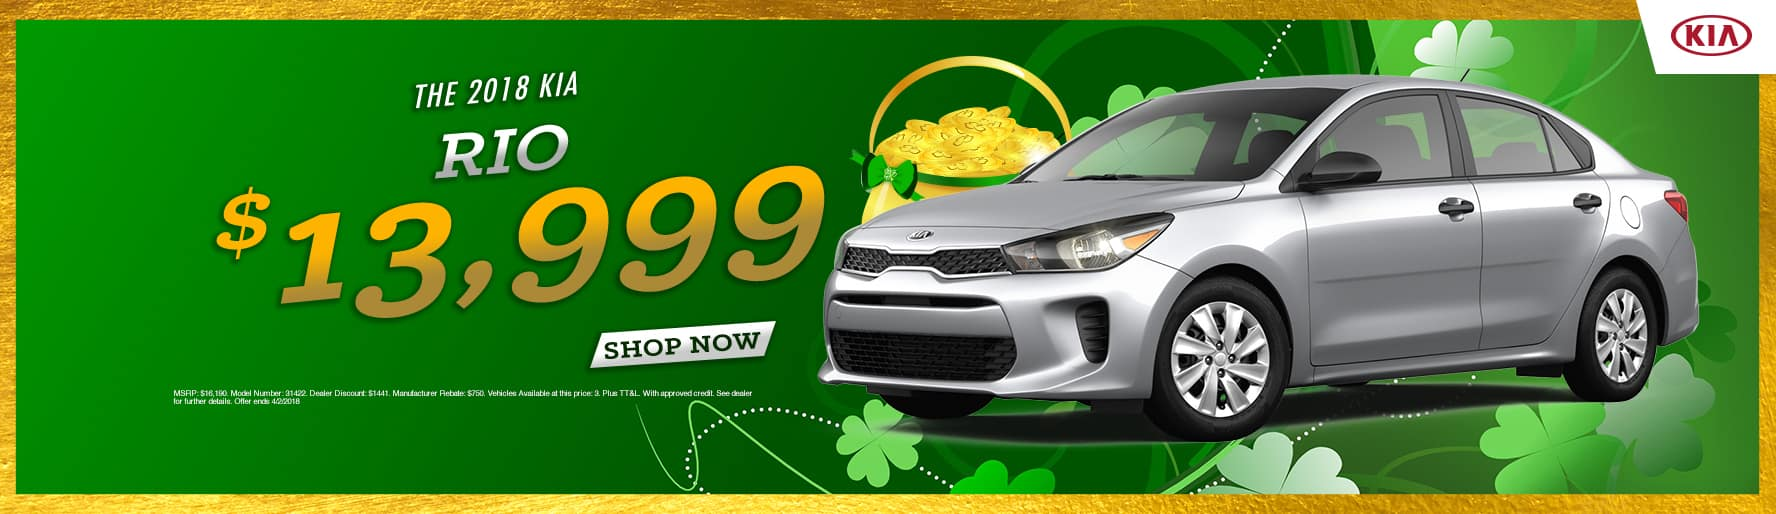 lubbock-tx-kia-2018-rio-deals-near-me